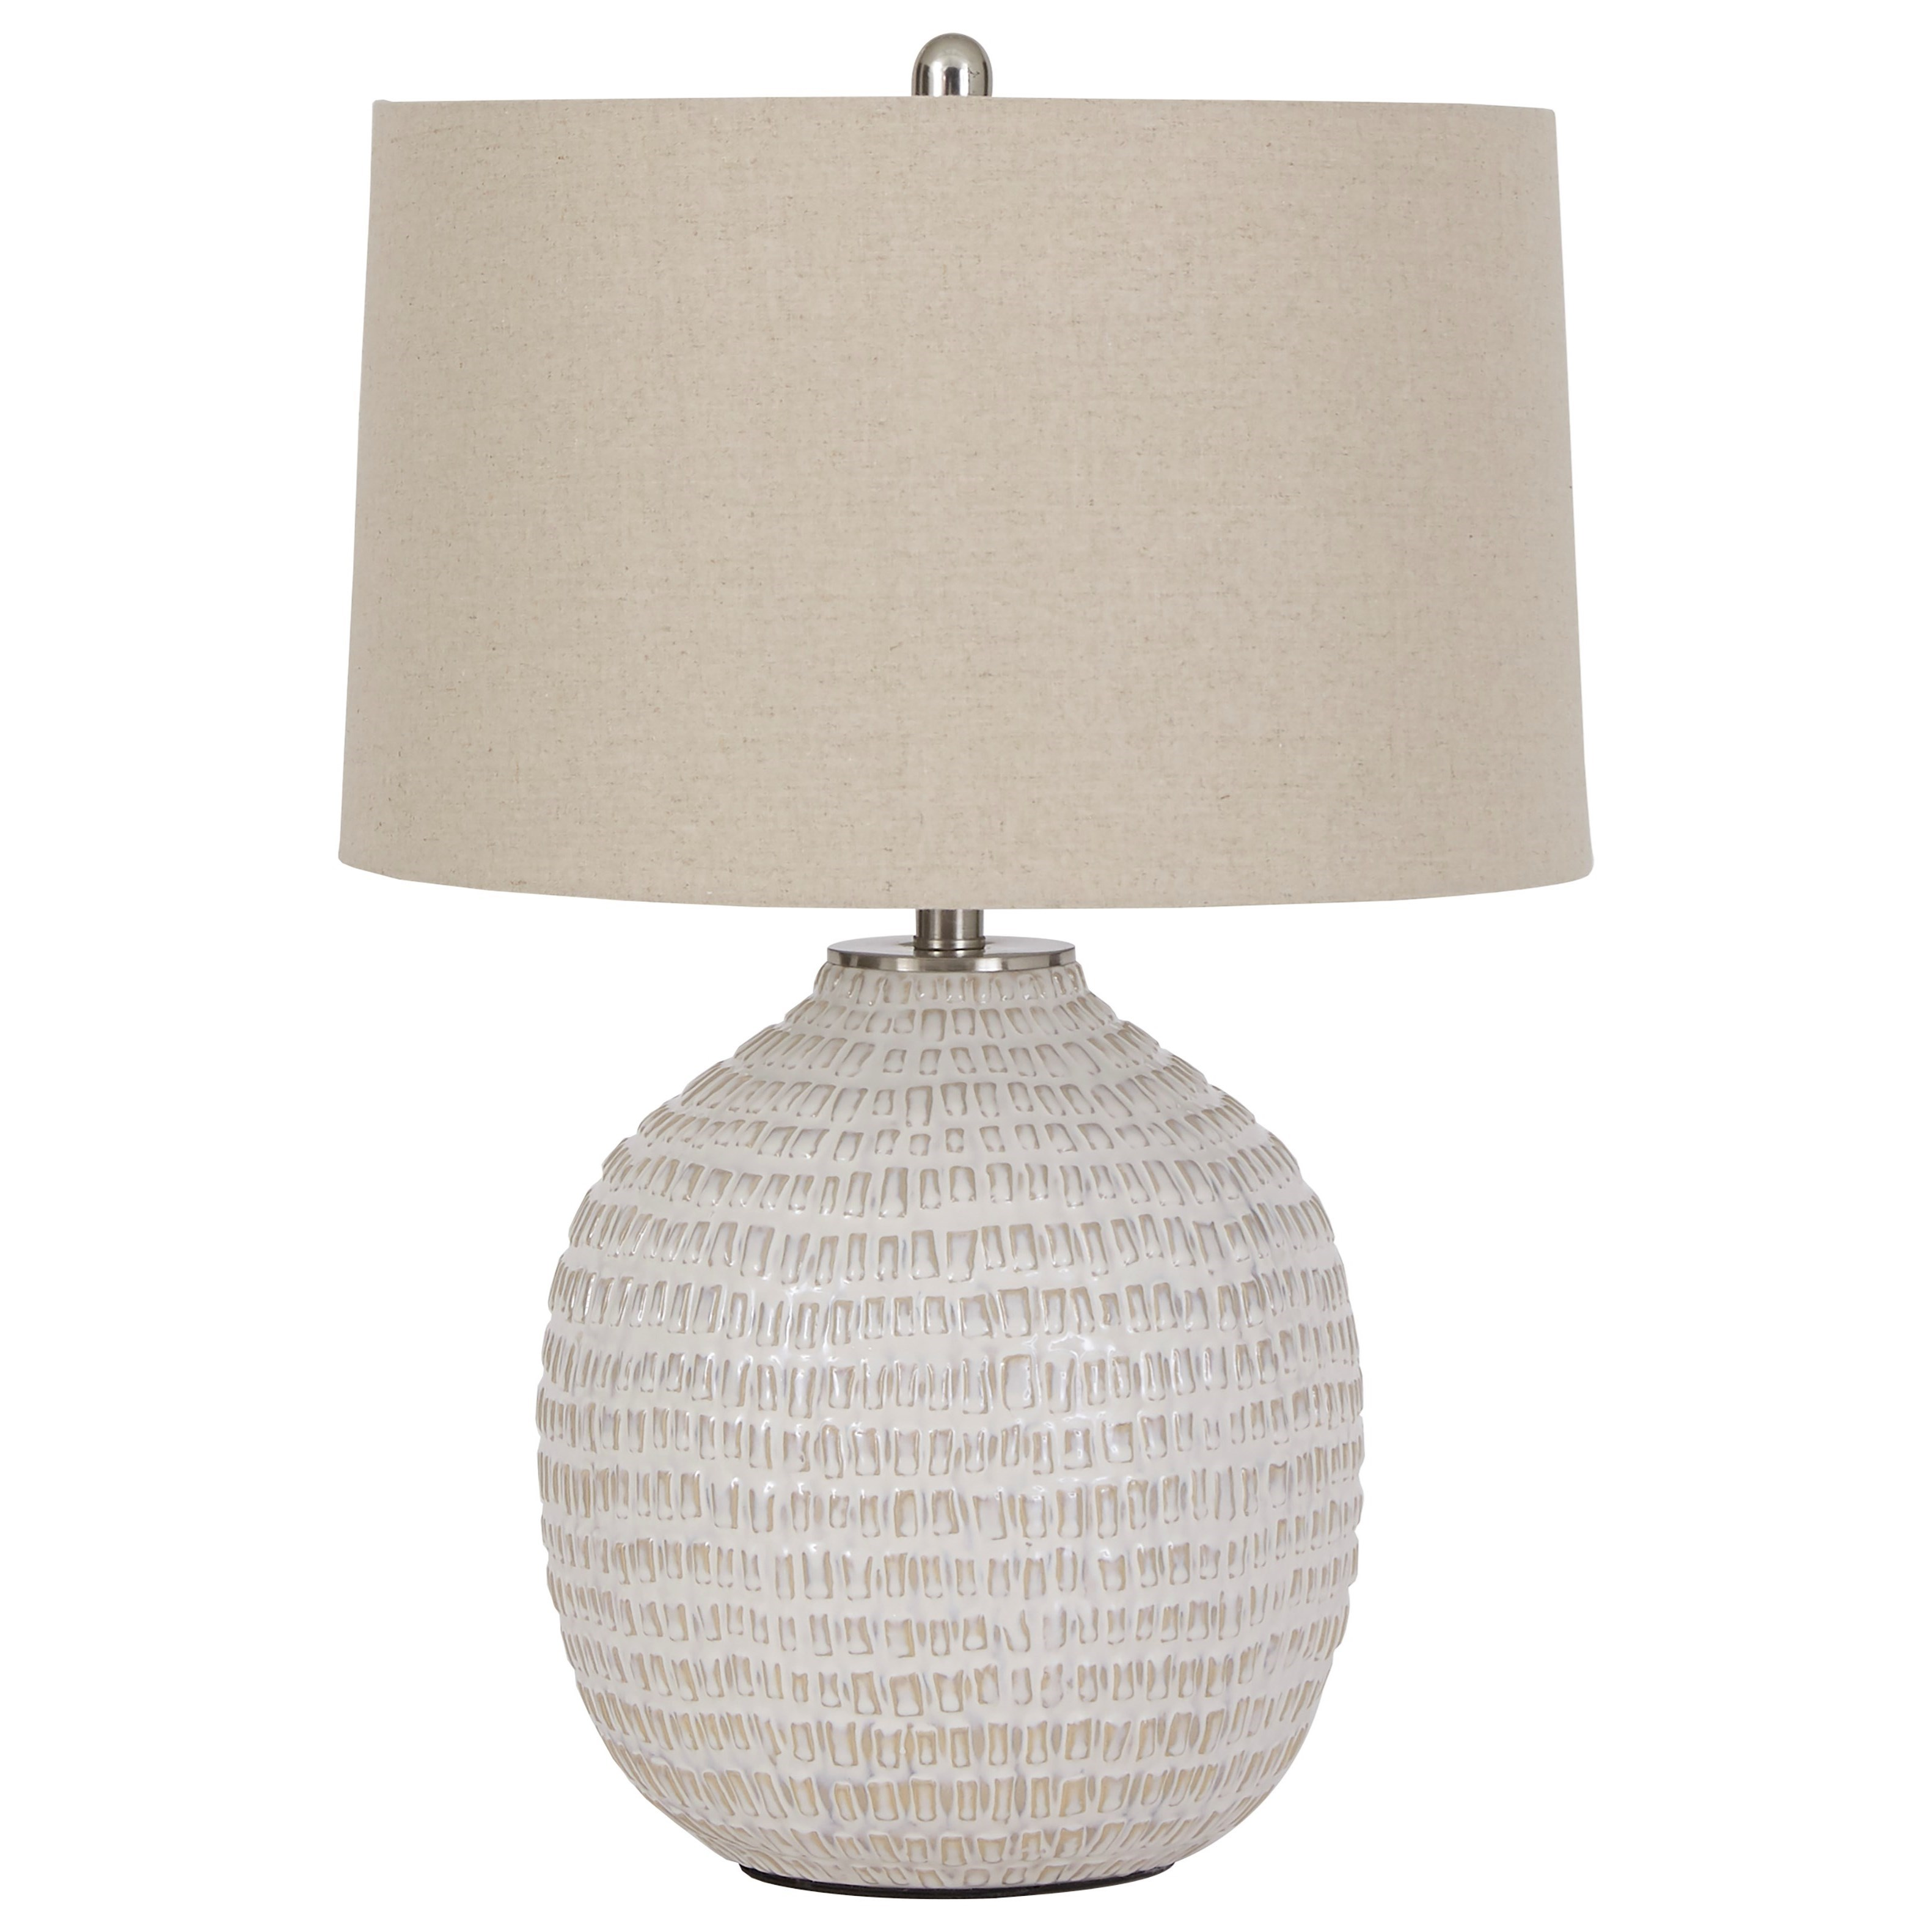 Lamps - Contemporary Jamon Beige Ceramic Table Lamp by Ashley (Signature Design) at Johnny Janosik